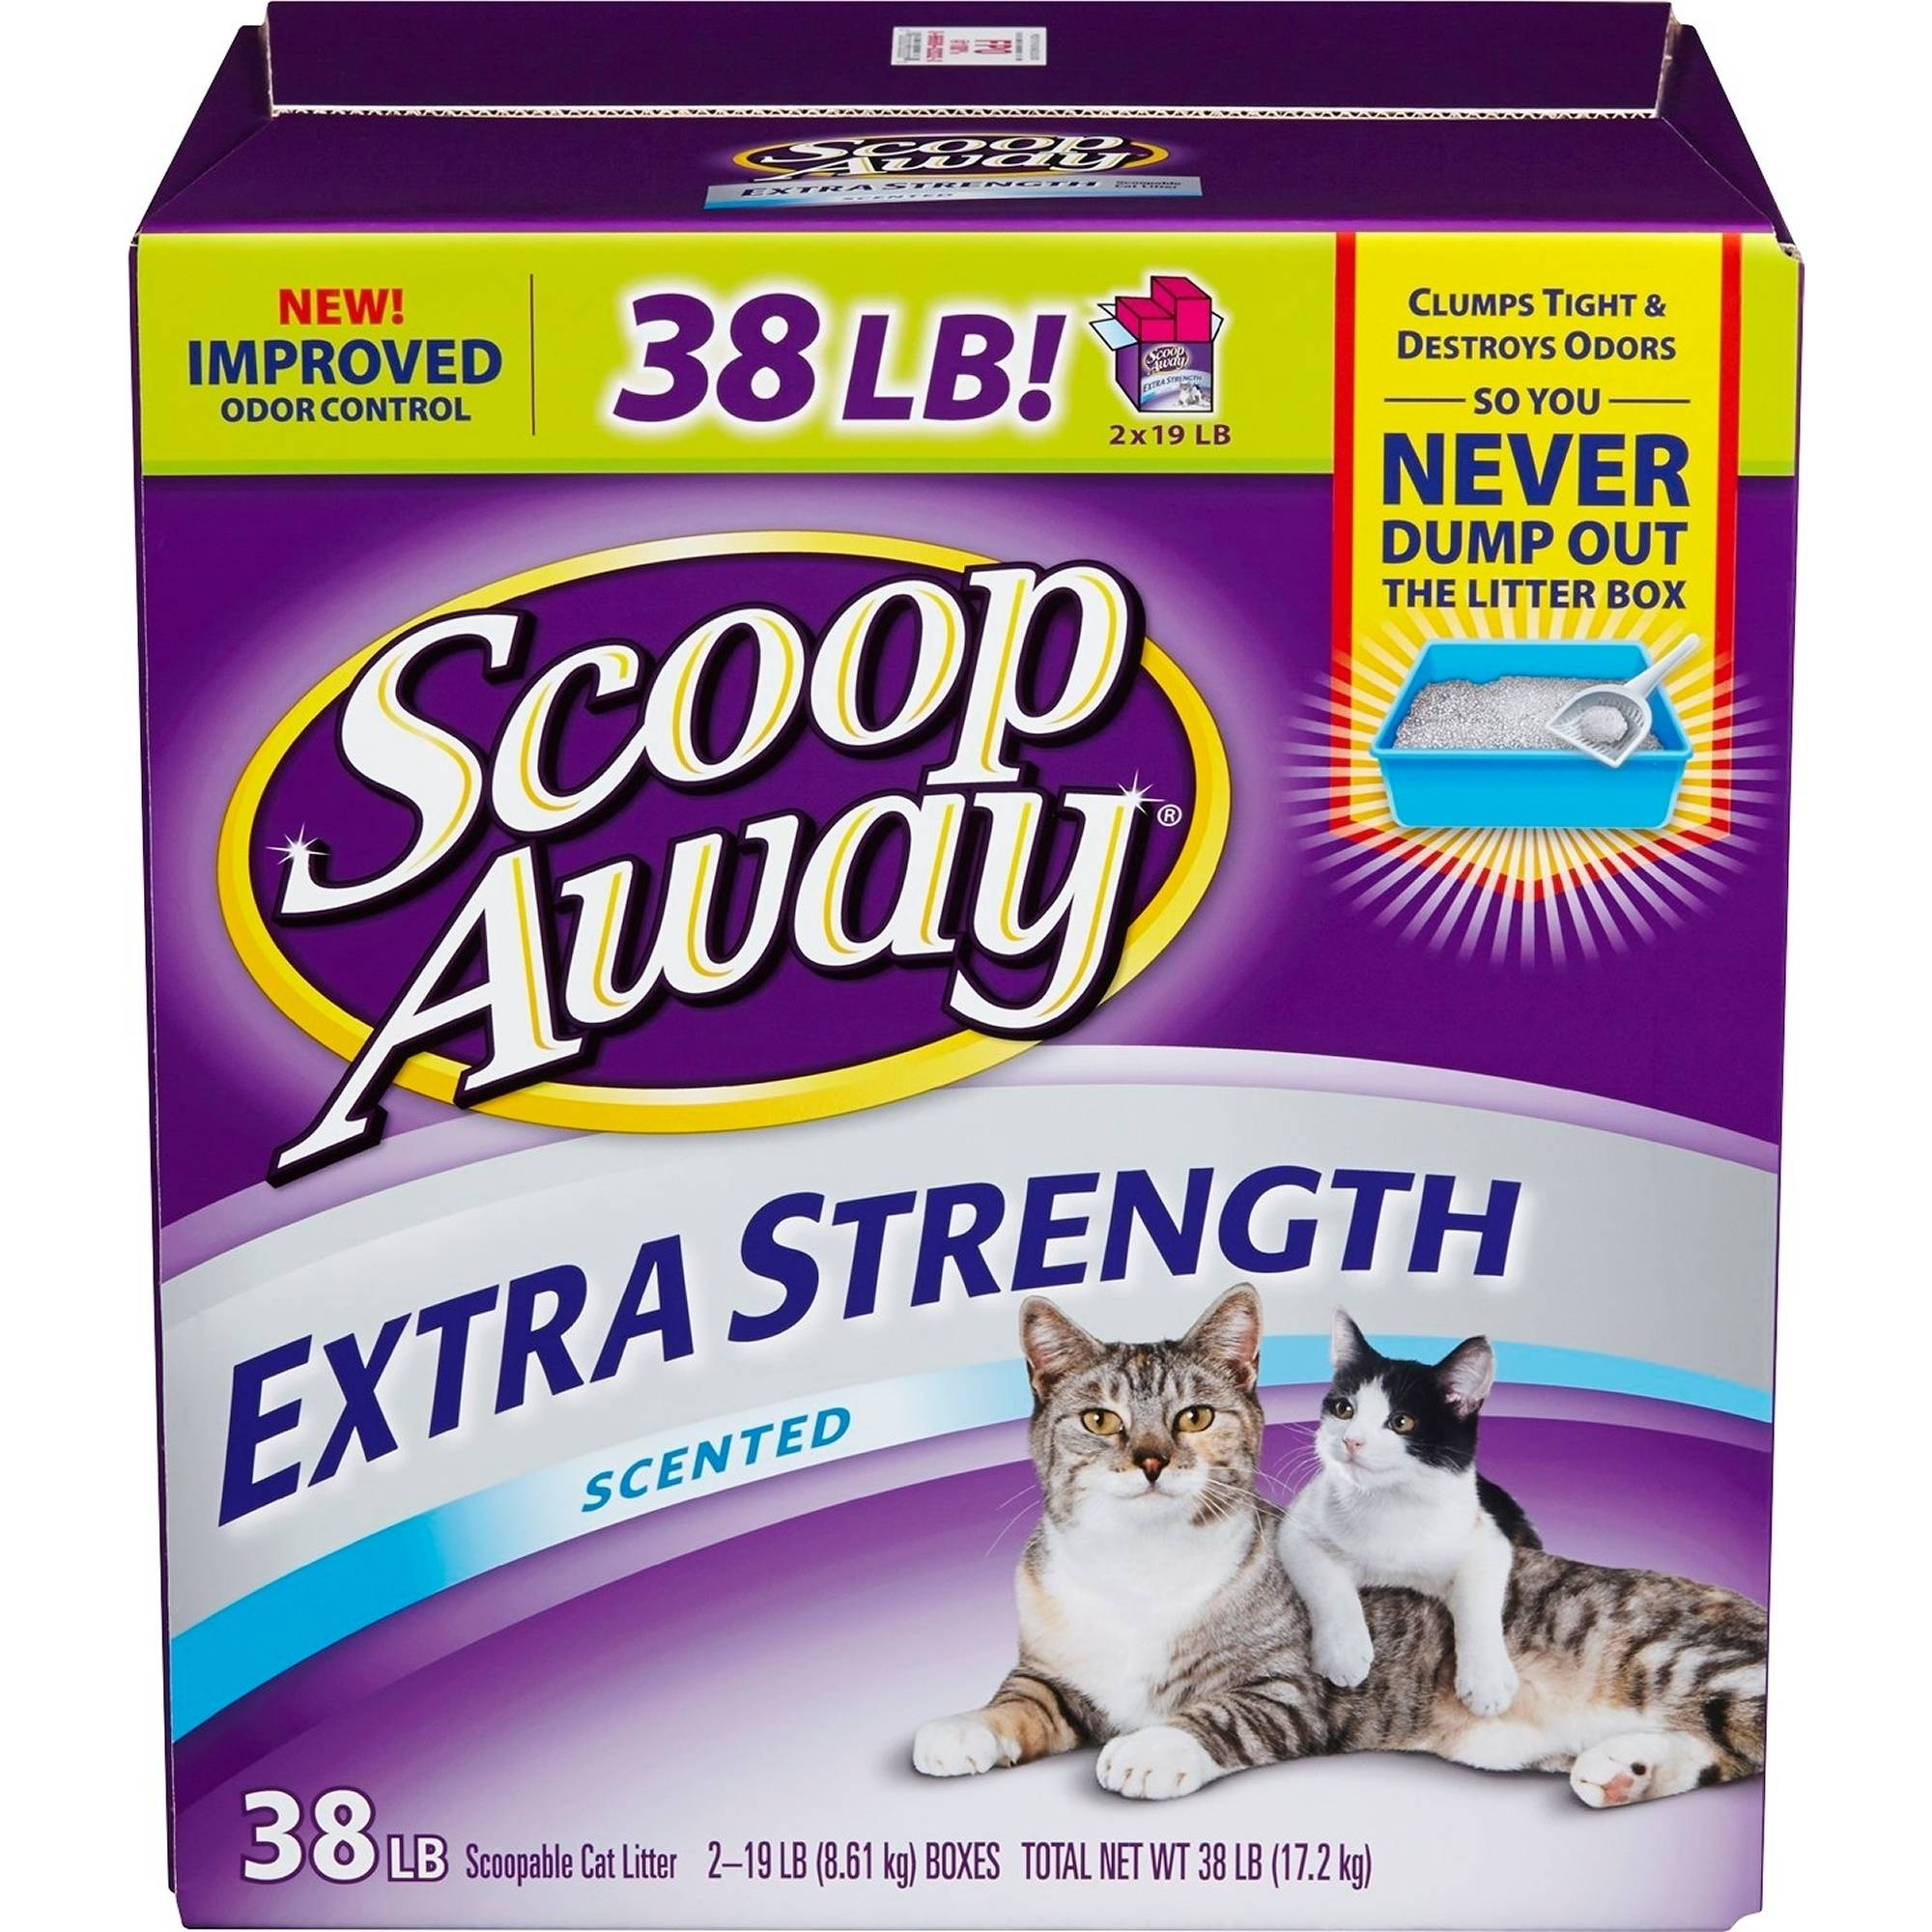 Scoop Away Extra Strength, Scented Cat Litter, 38 lb Box